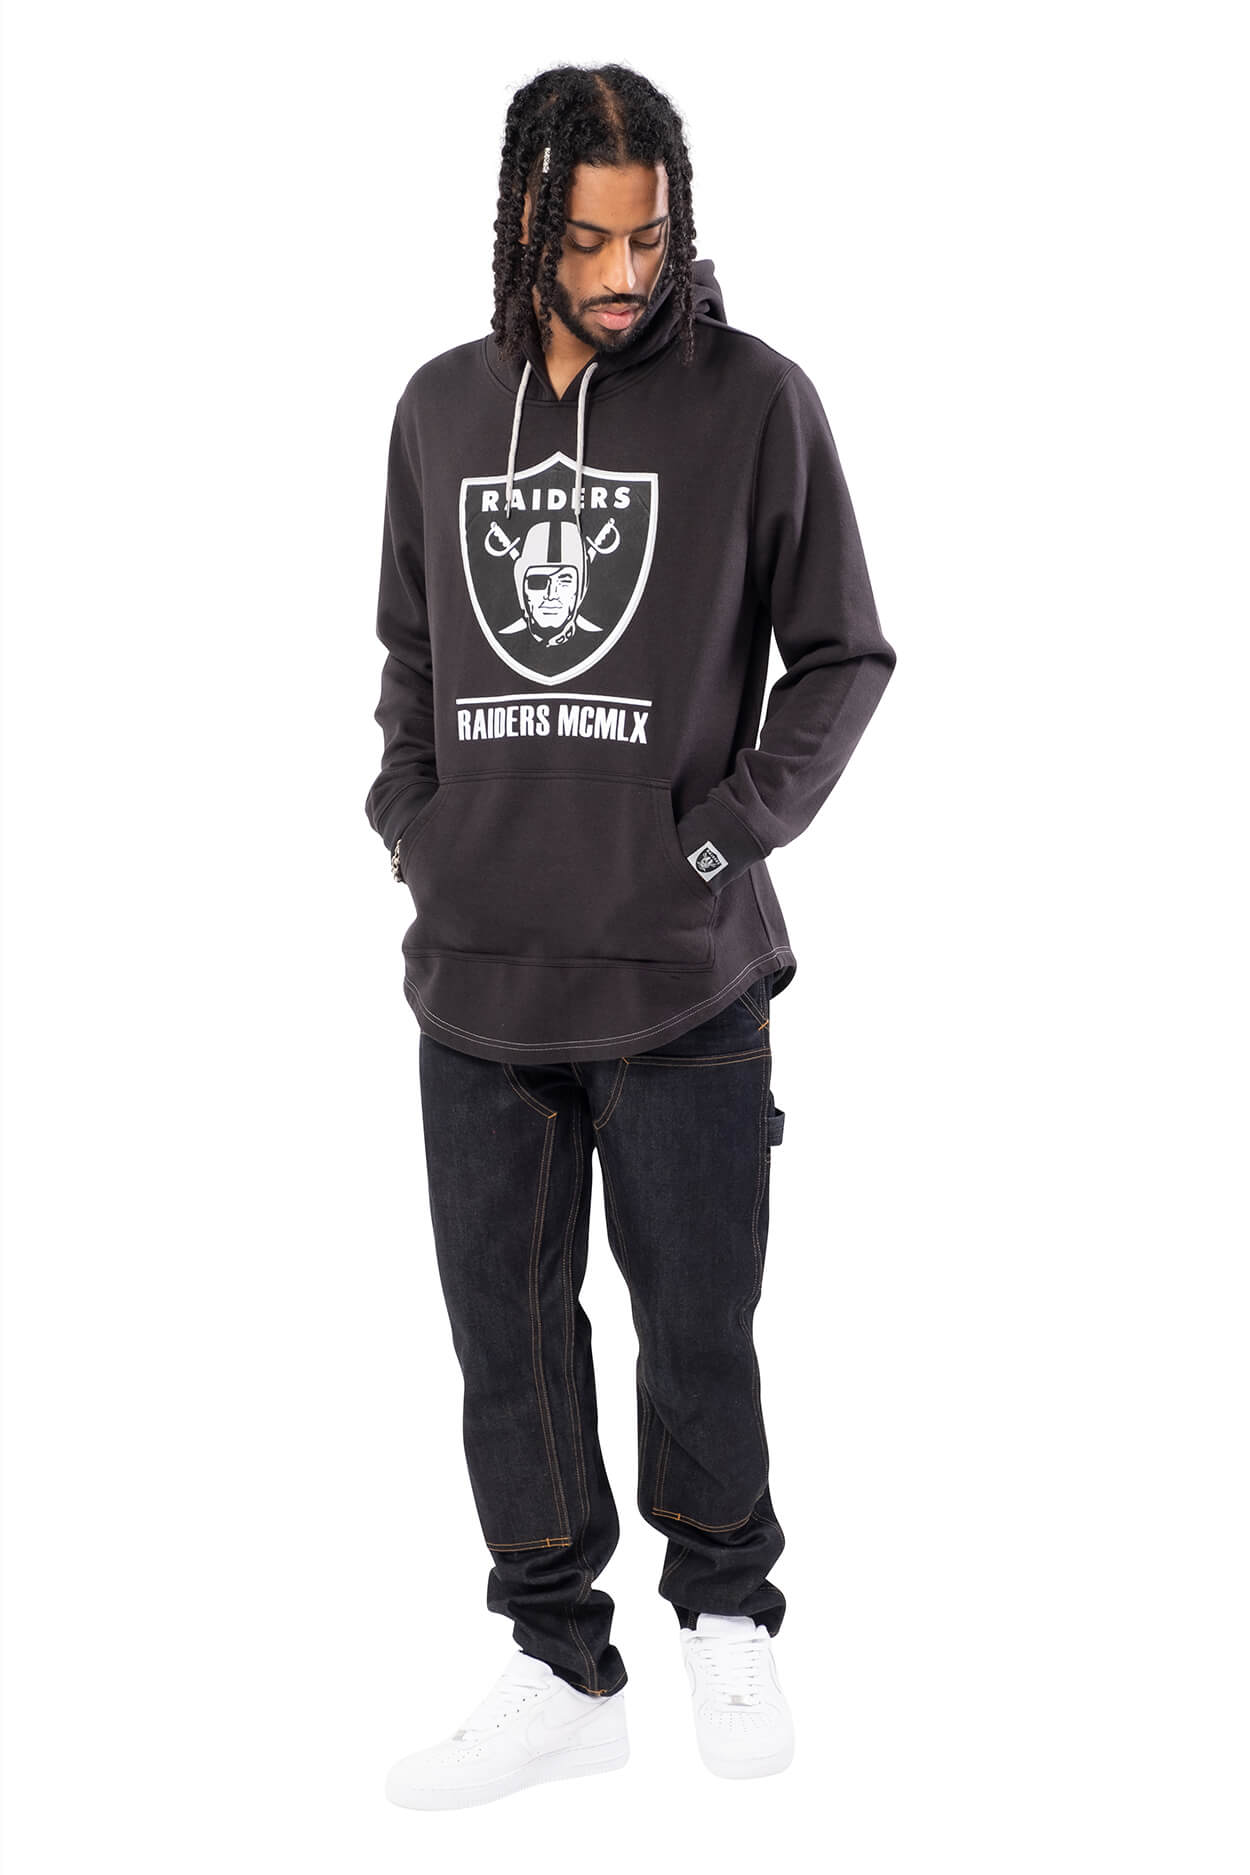 NFL Las Vegas Raiders Men's Embroidered Hoodie|Las Vegas Raiders